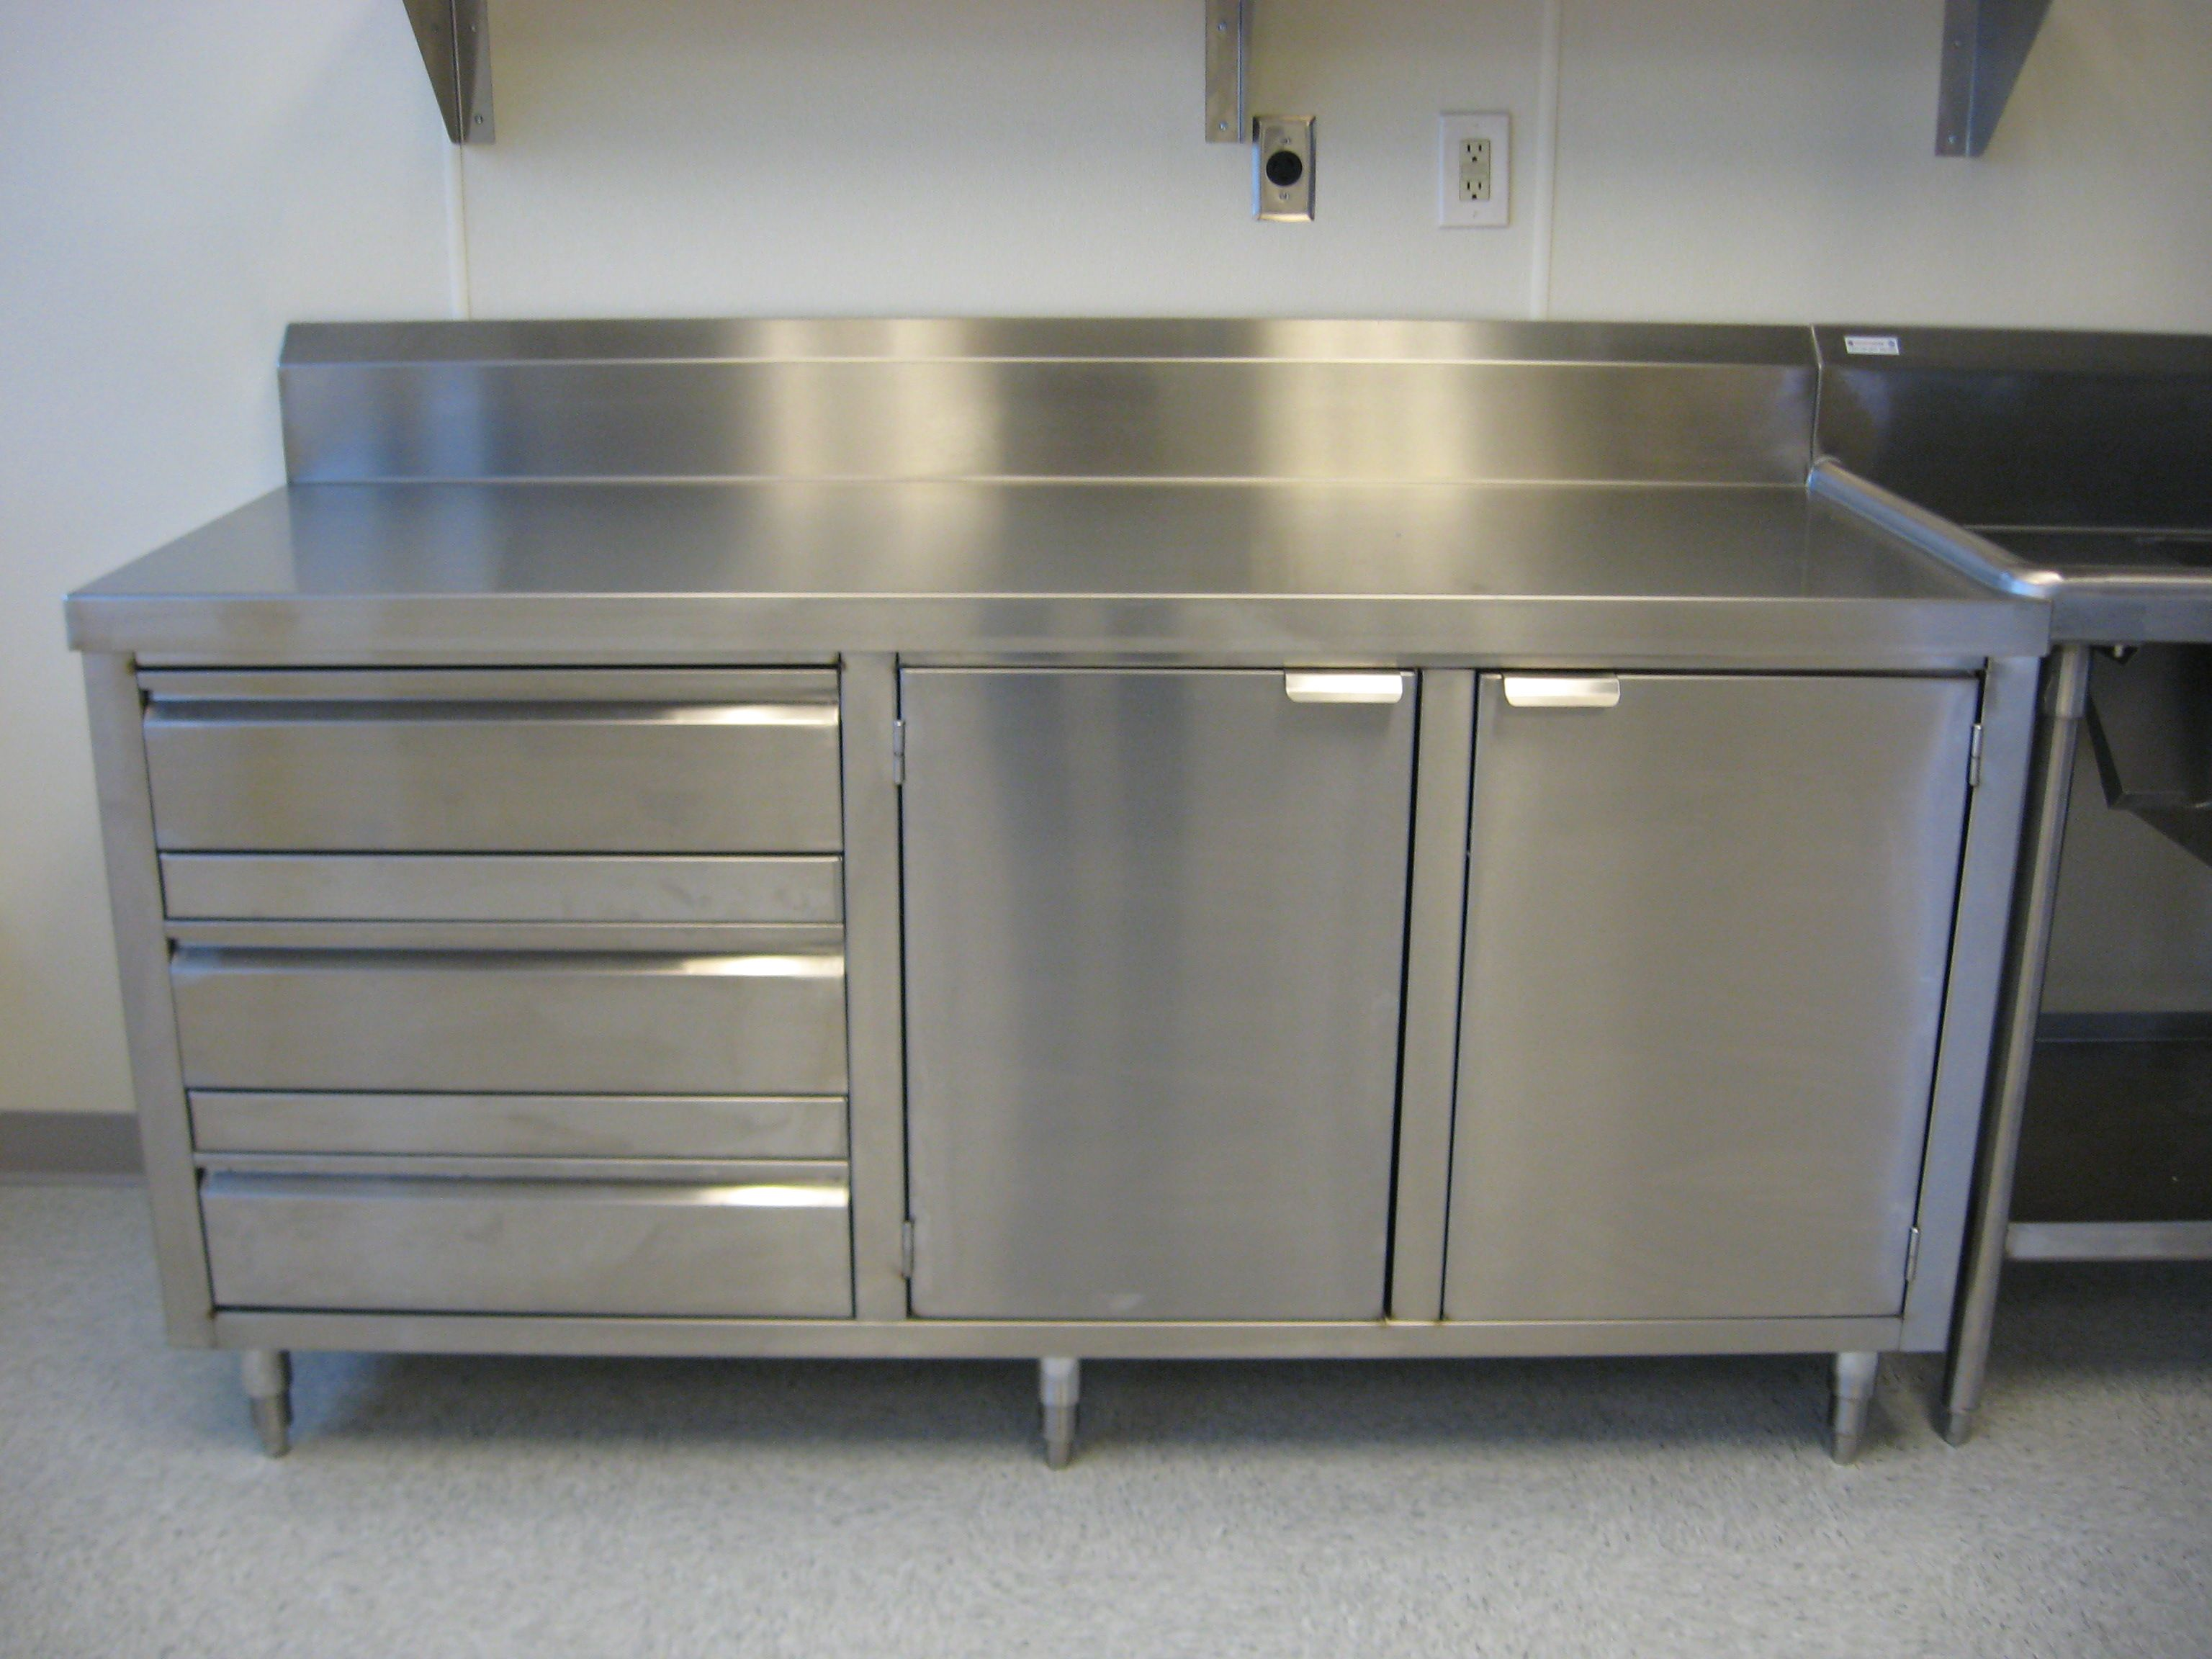 Best Kitchen Gallery: Custom Dish Cabi Michael Kitchen Love Pinterest Metal of Stainless Steel Commercial Kitchen Cabinets on rachelxblog.com